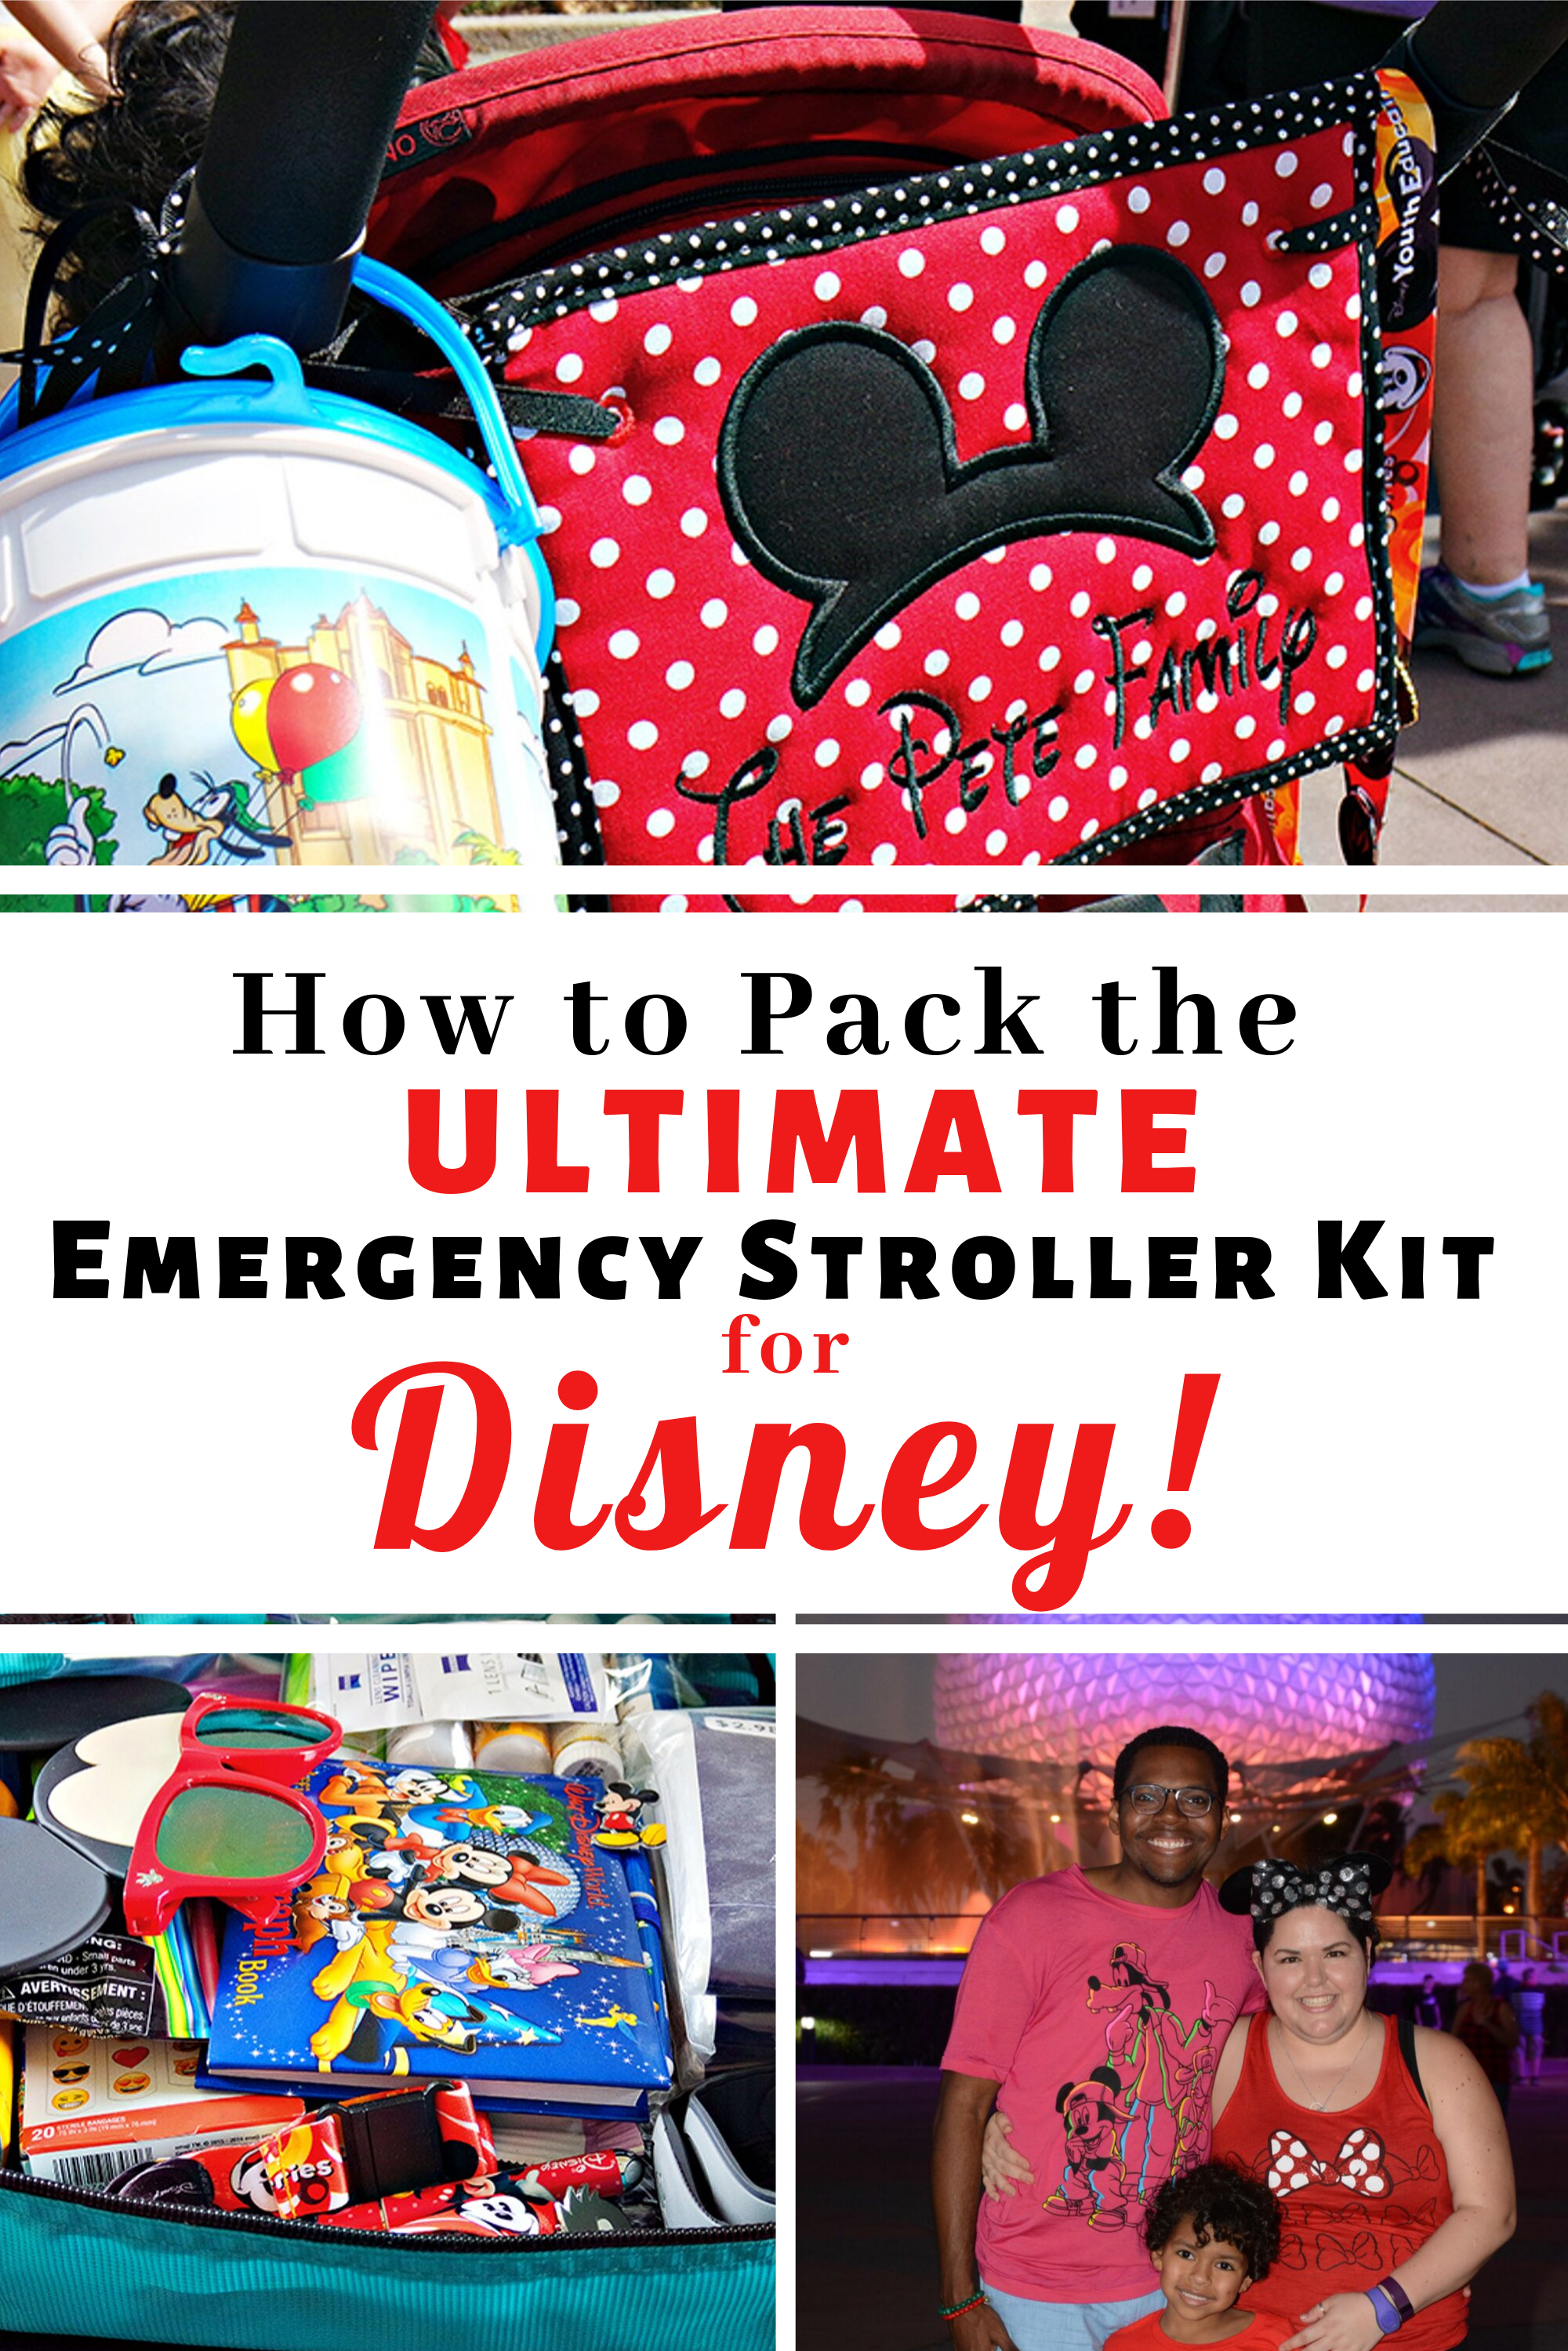 How to Pack the Ultimate Emergency Stroller Kit for Disney pin for Pinterest.